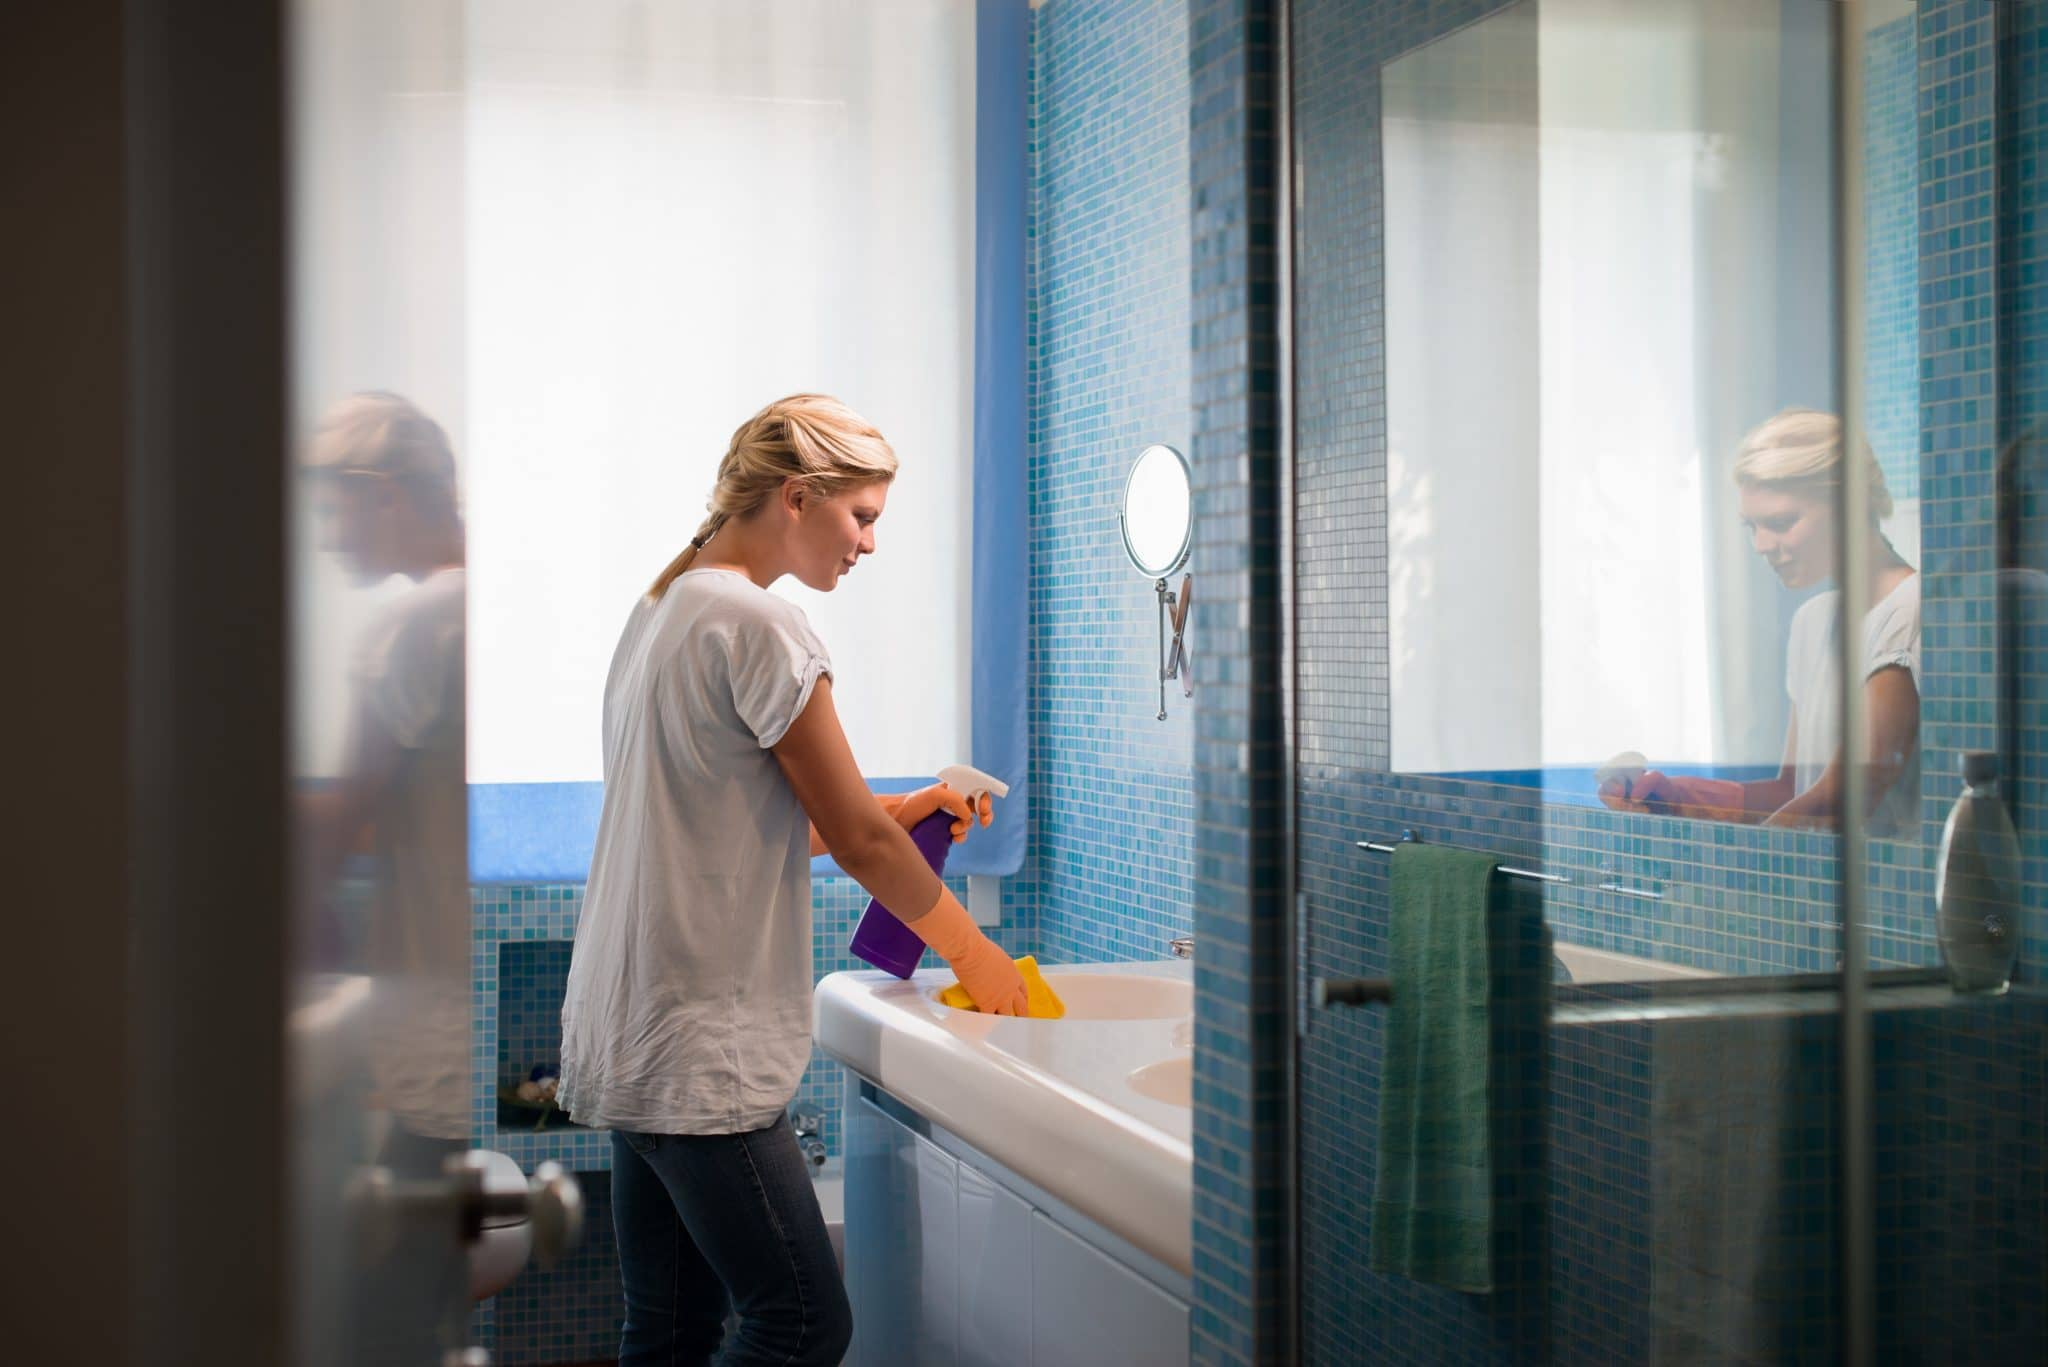 blond-young-woman-cleaning-blue-tiled-bathroom-household-chores-coronavirus-cleaning